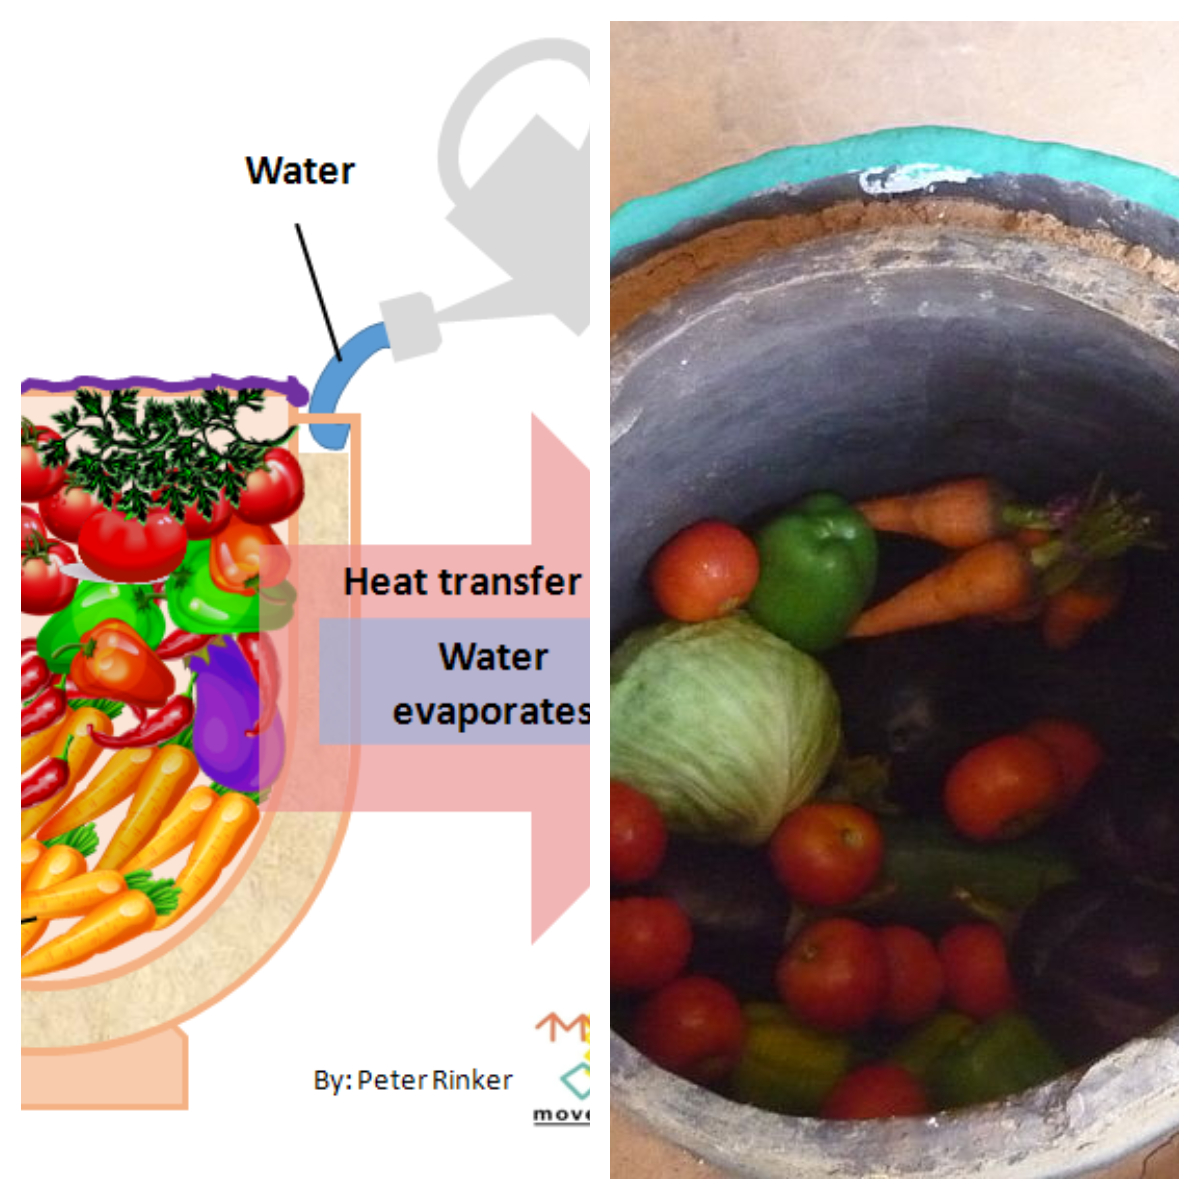 Keeping Food Cool with Evaporative Cooling. Peter Rinker - CC BY-SA 3.0